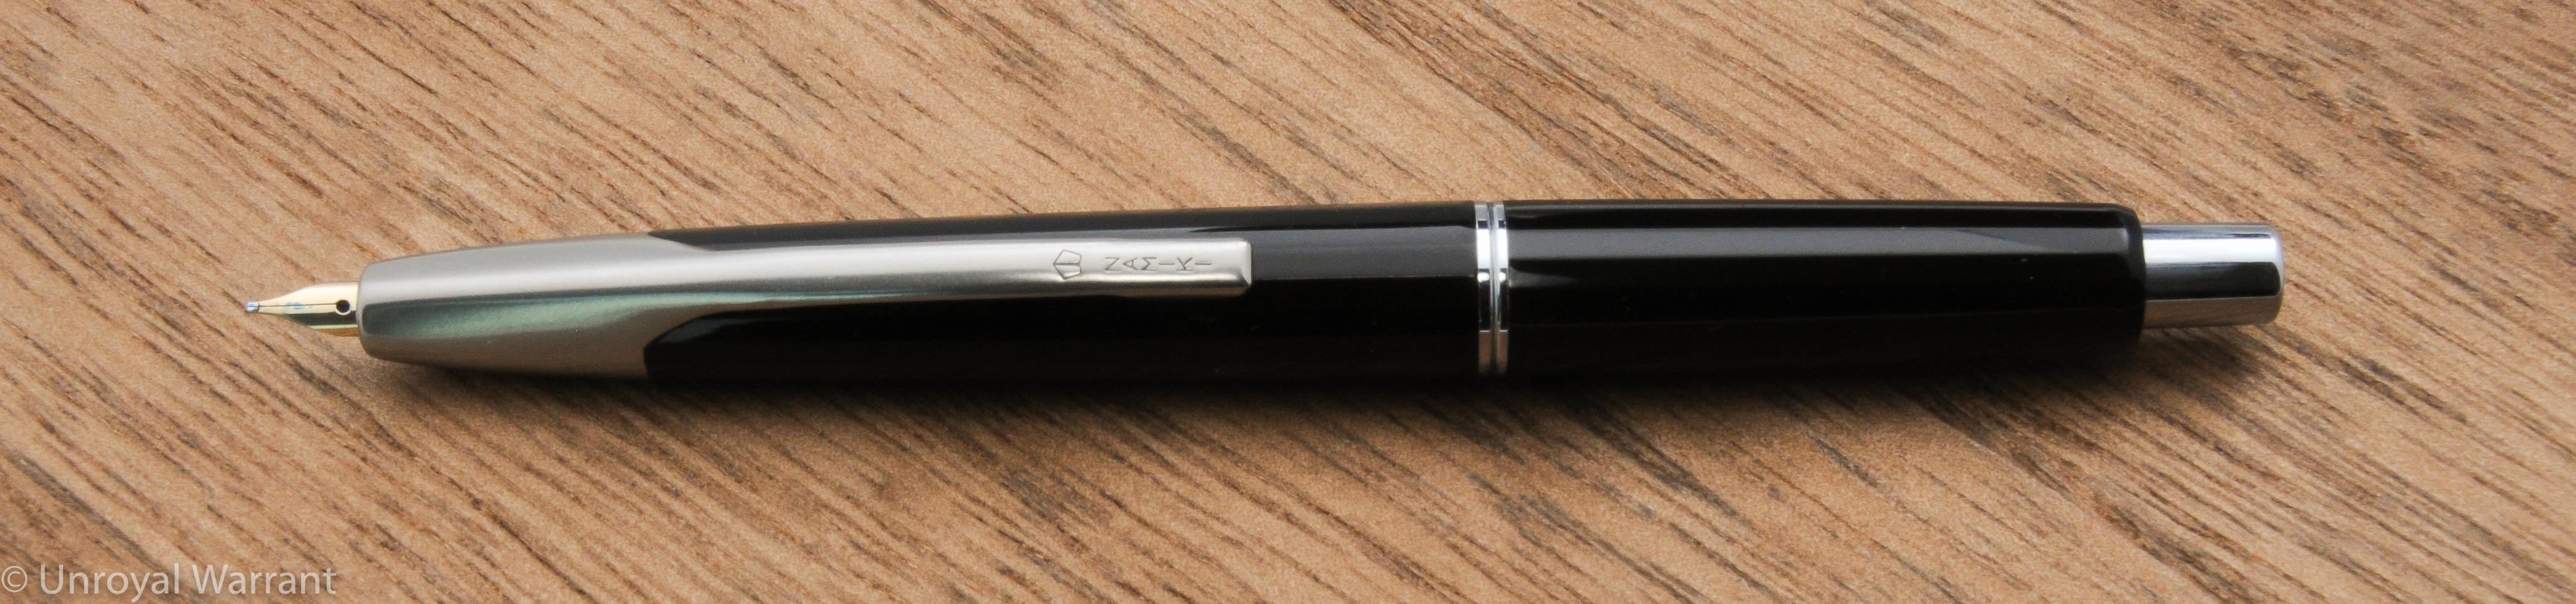 Pilot Namiki Vanishing Point Fountain Pen -3